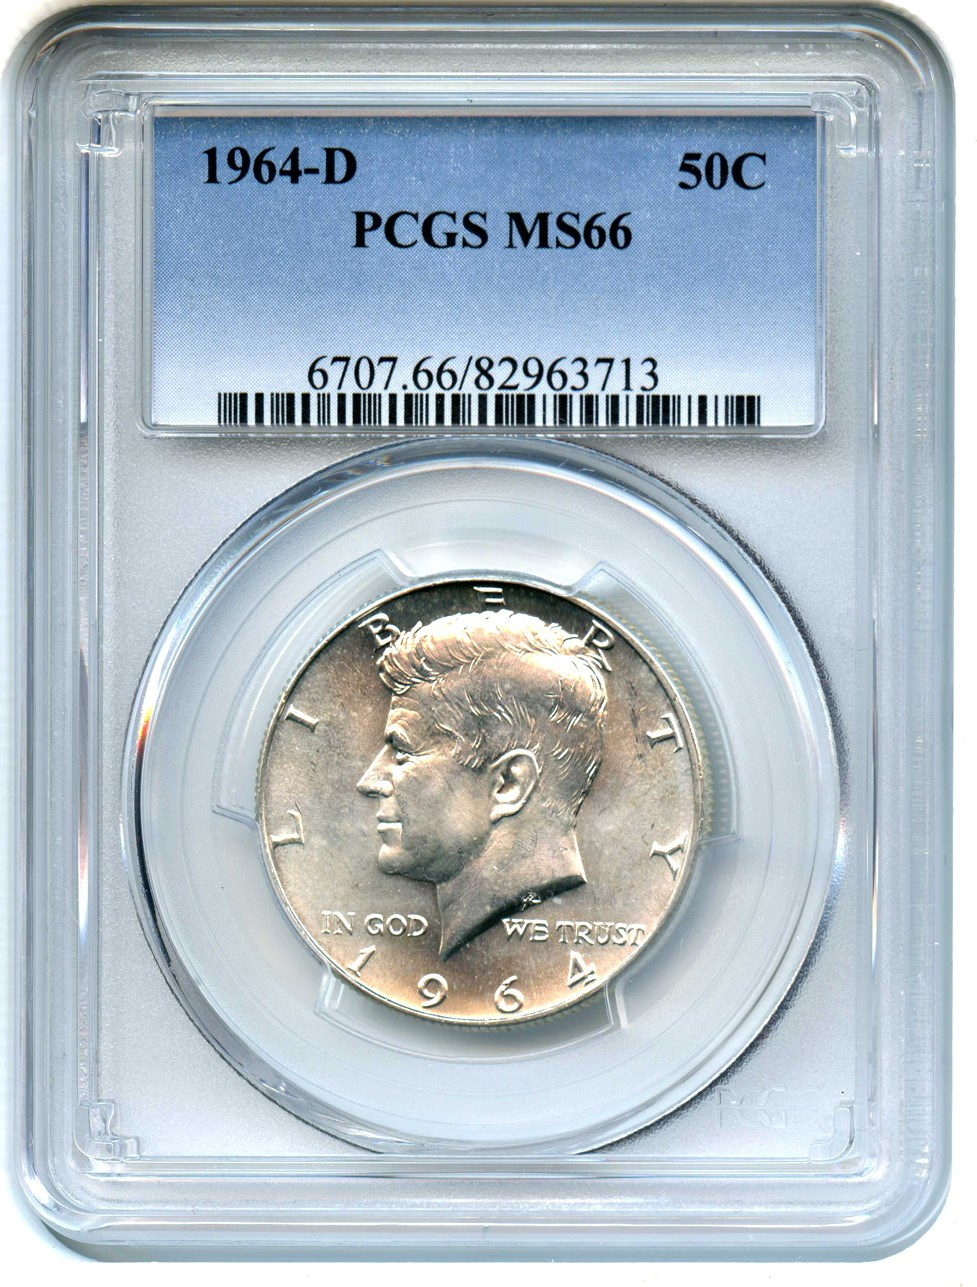 Kennedy Half Dollar (1964 to Date) - Coins for sale on Collectors Corner